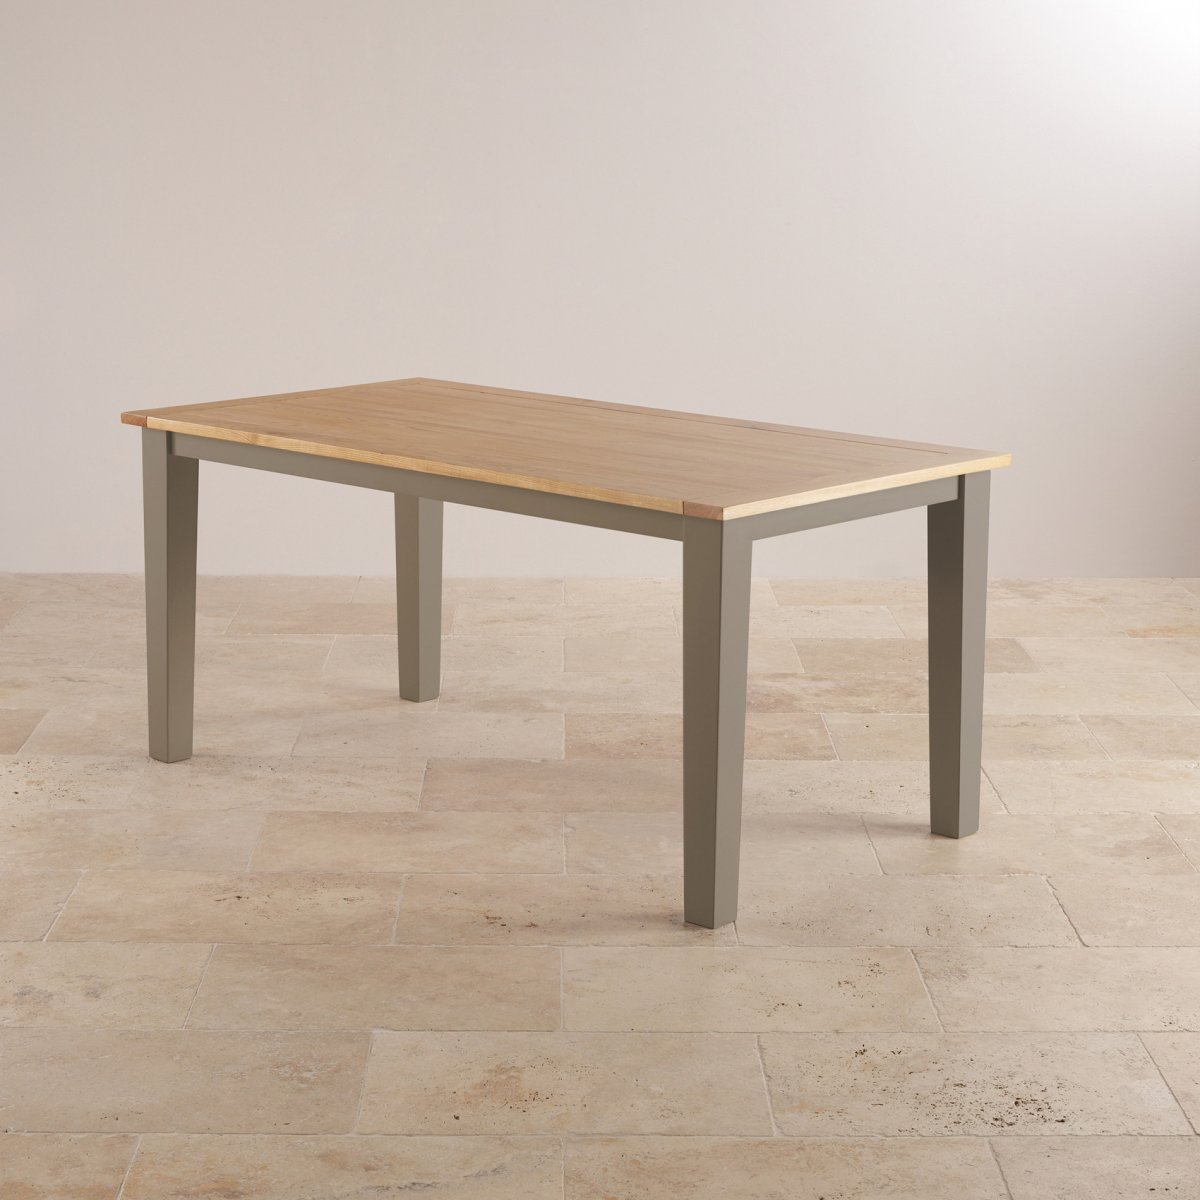 Light Oak Dining Room Table And Chairs: St Ives Dining Set In Grey Painted Acacia: Table + 6 Chairs